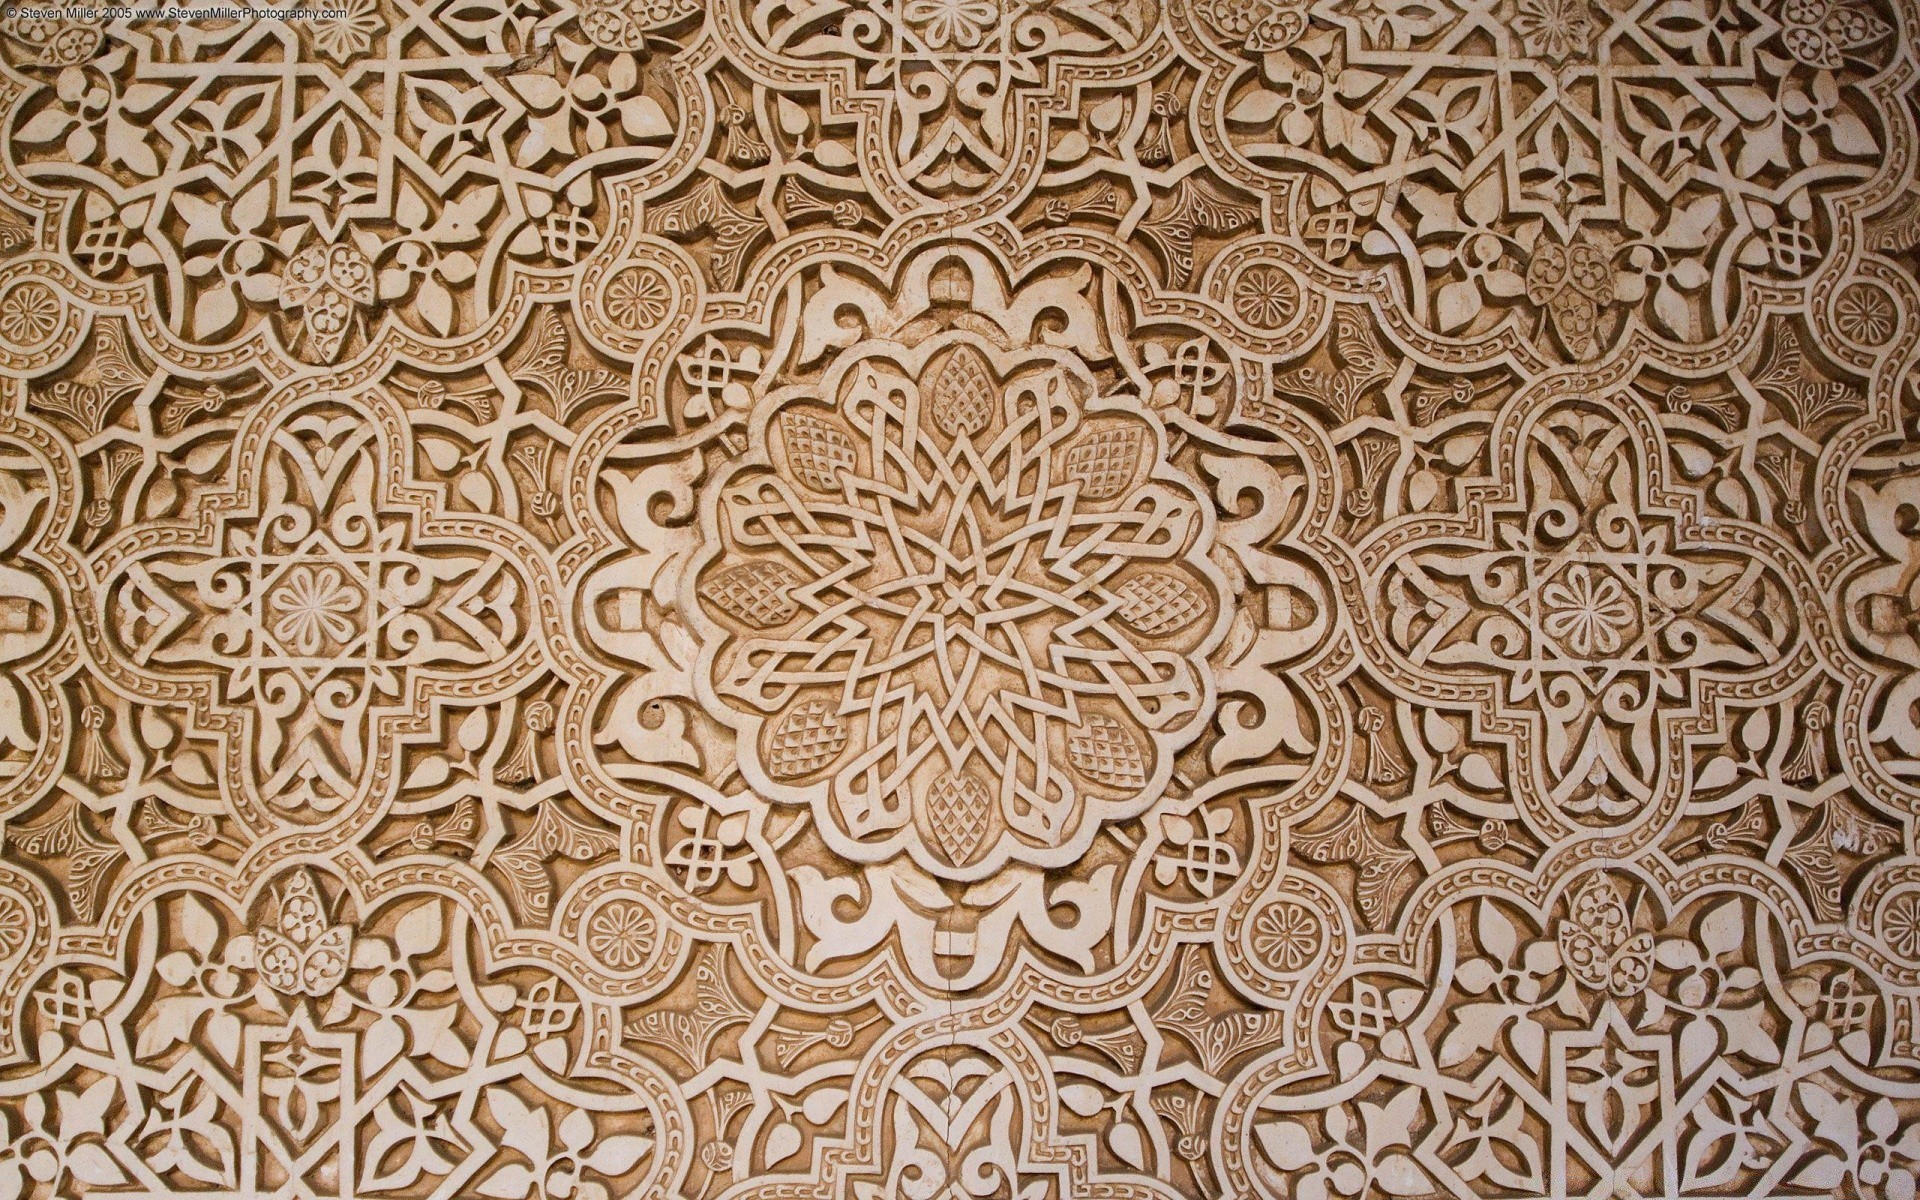 Arabesque art android wallpapers for free